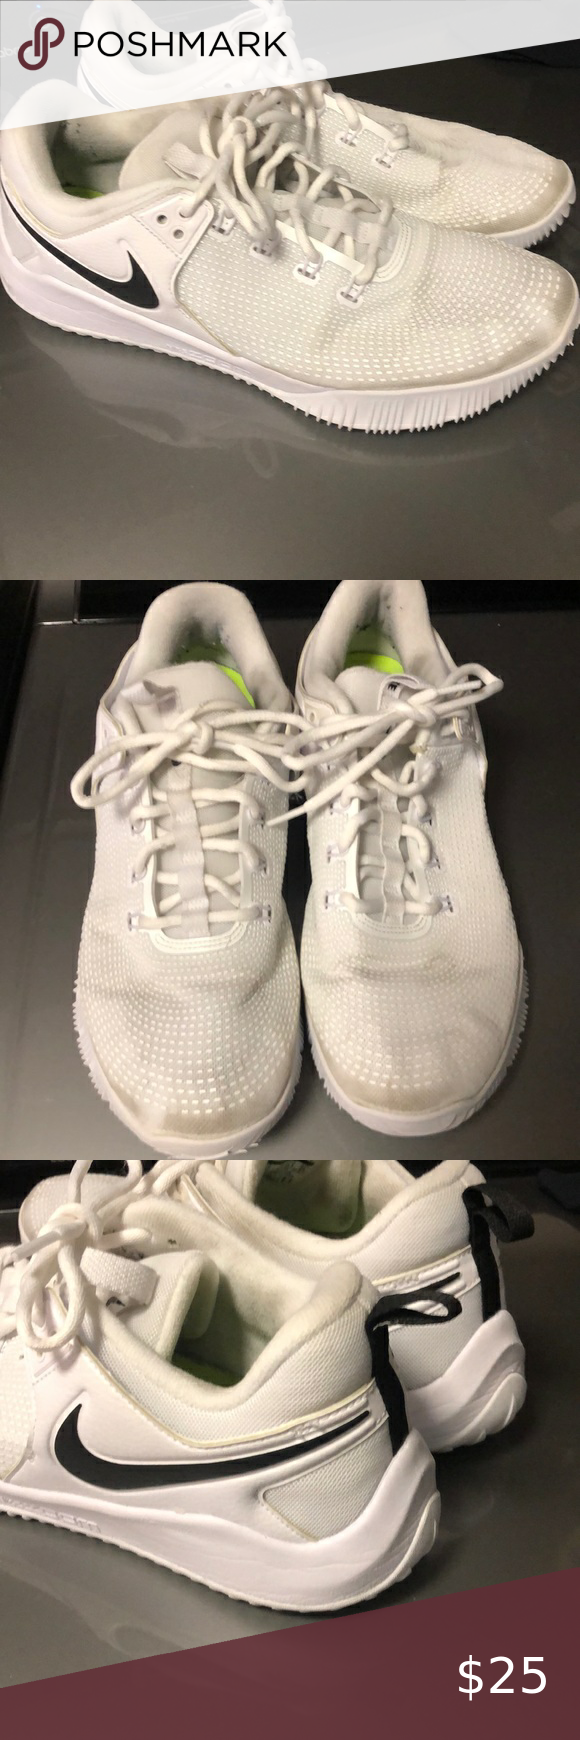 Women S Nike Volleyball Shoes In 2020 Volleyball Shoes Nike Volleyball Nike Volleyball Shoes